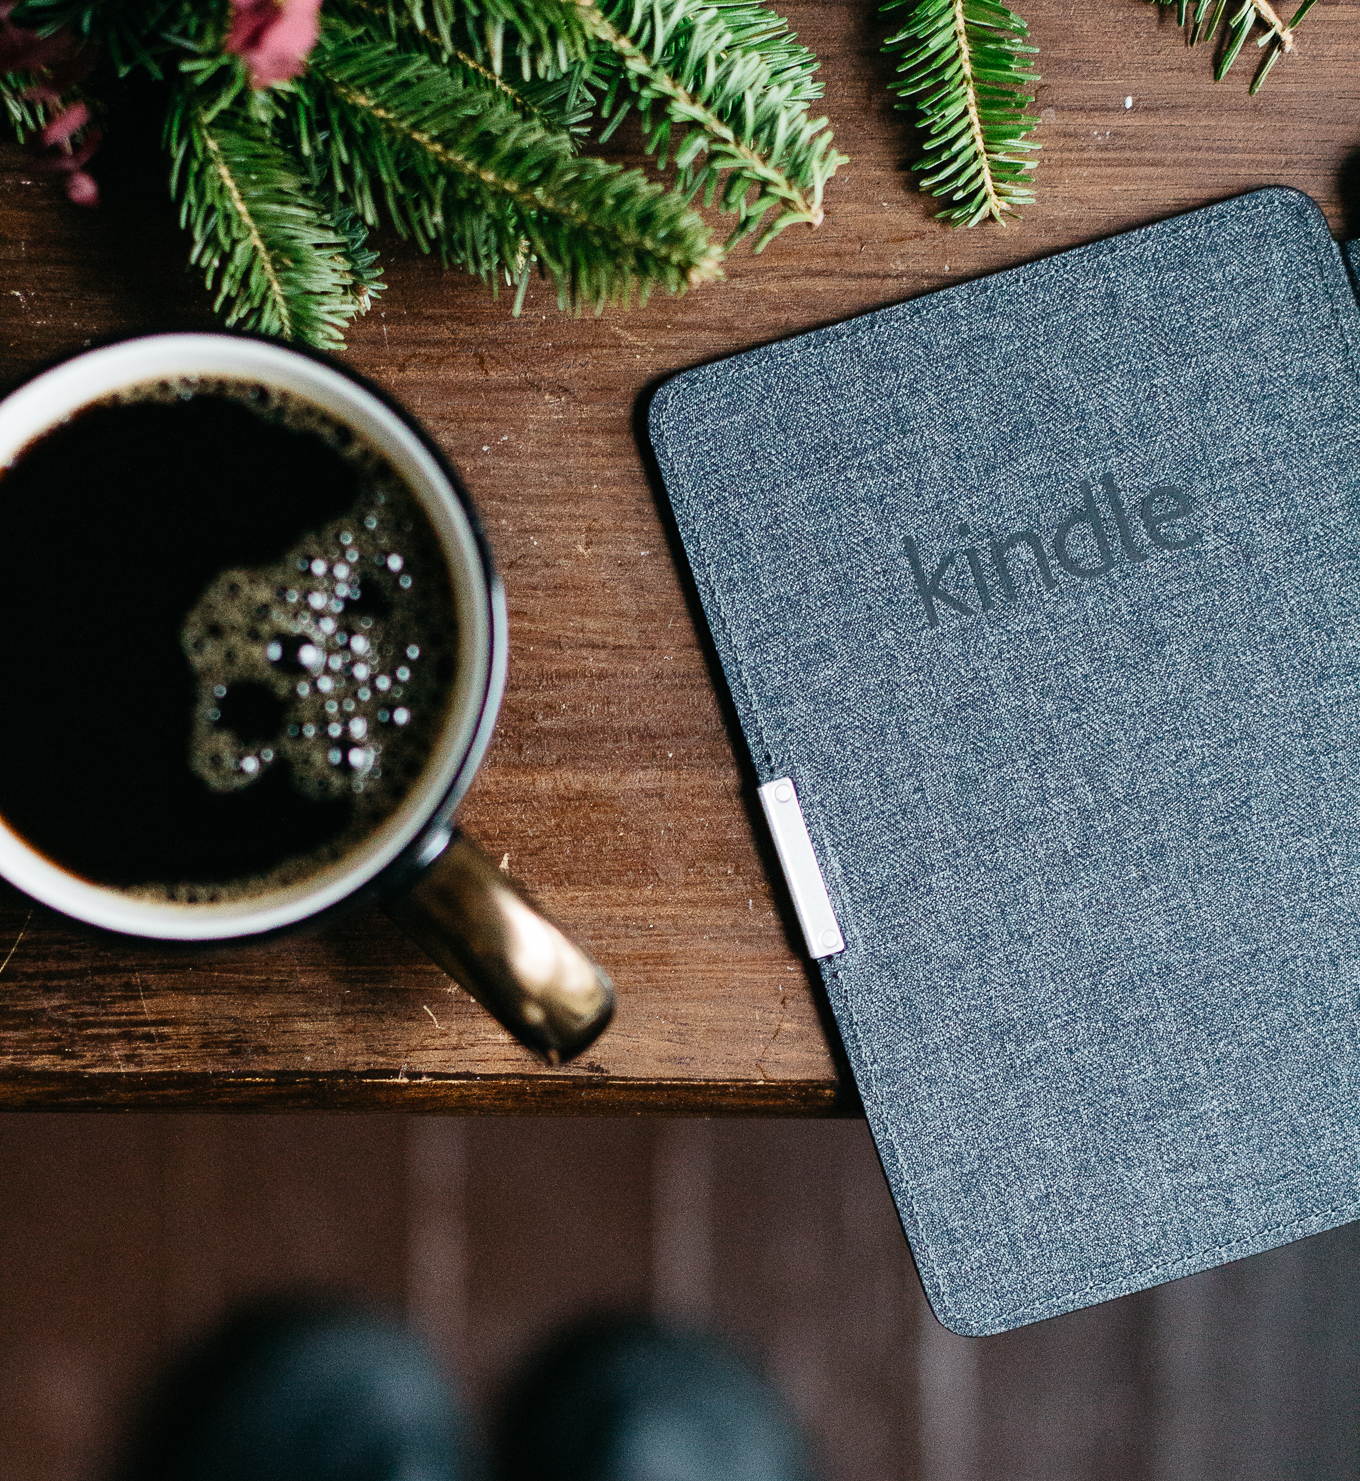 amazon, kindle, kindle paperwhite, e-reader, christmas gift ideas